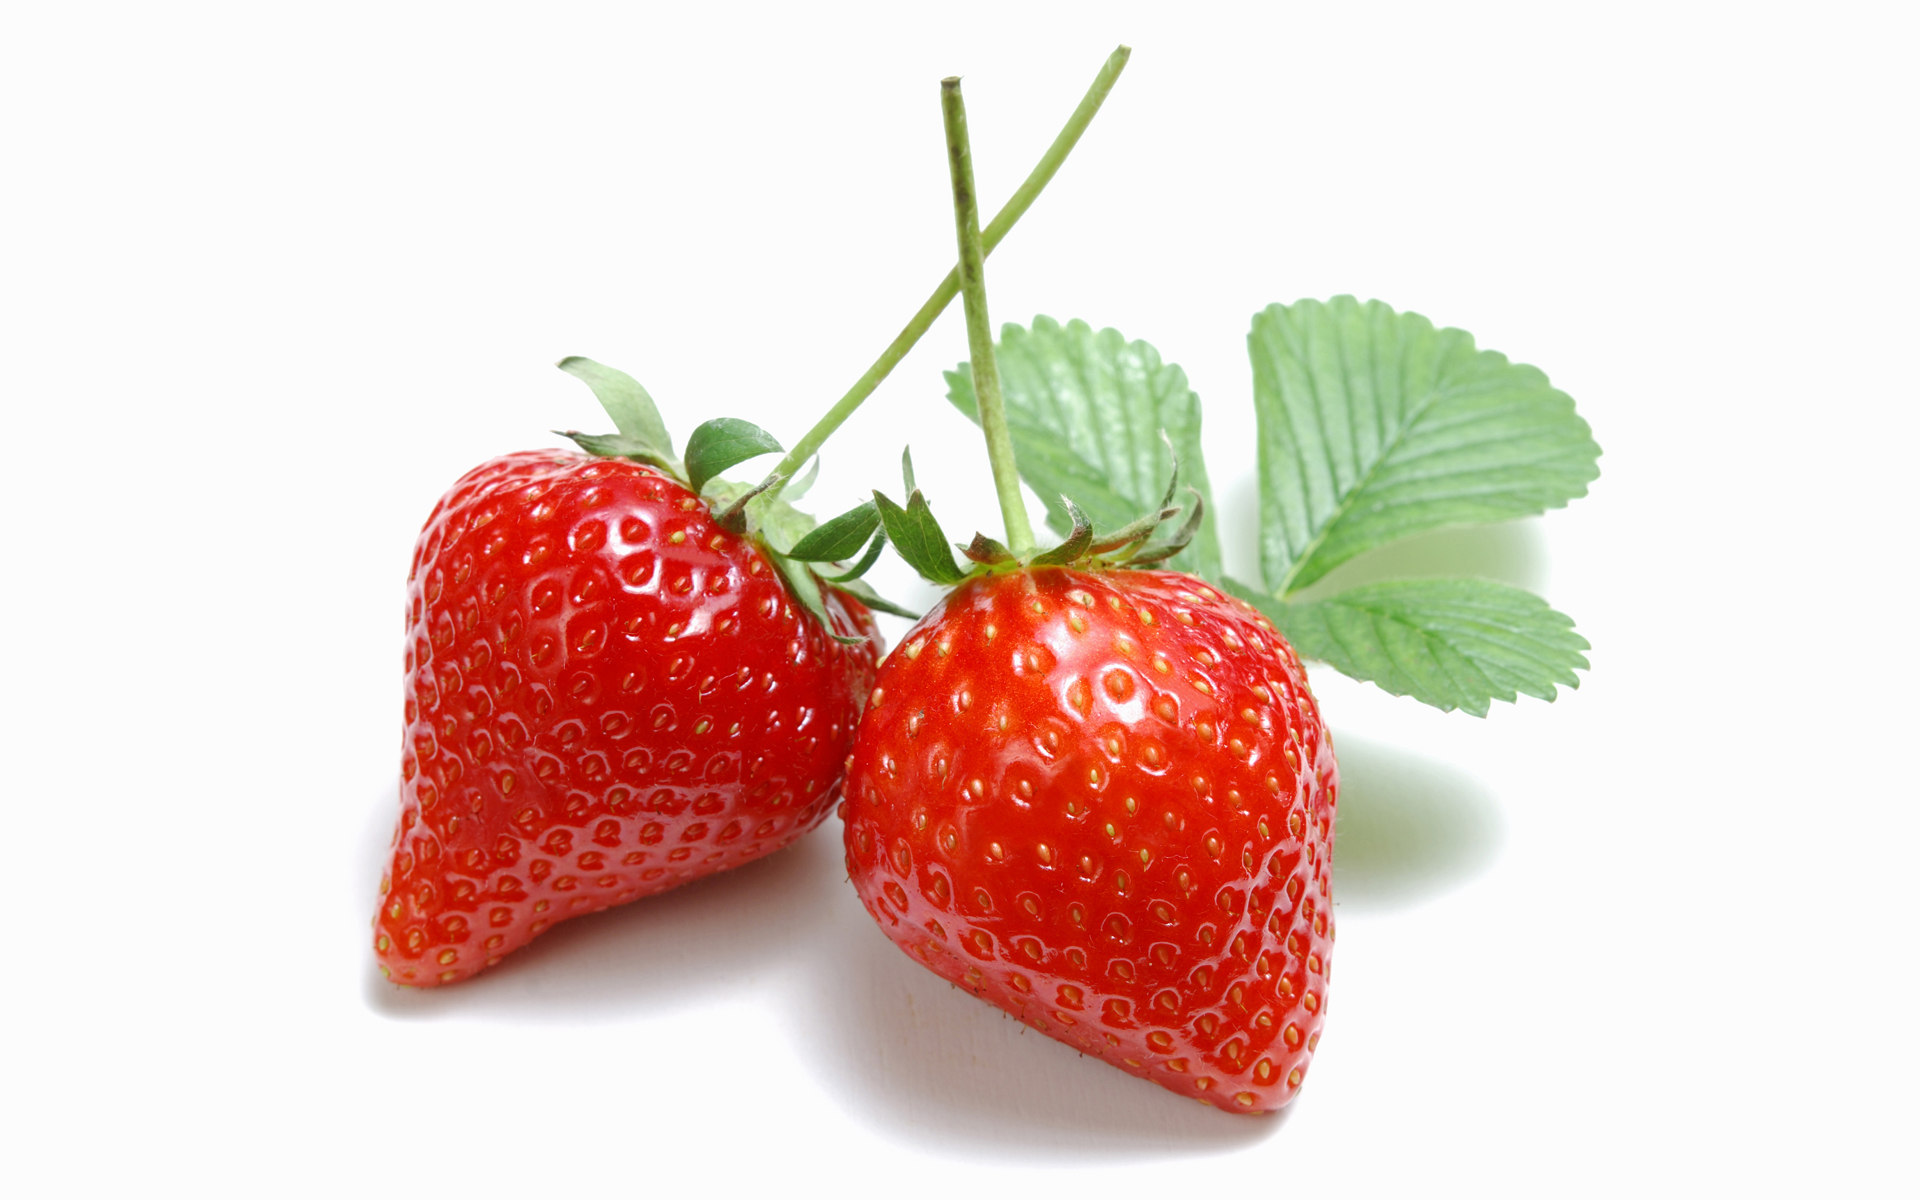 Red Abstract Beautiful Fresh Strawberries Hq For One Stop 277245 Wallpaper wallpaper